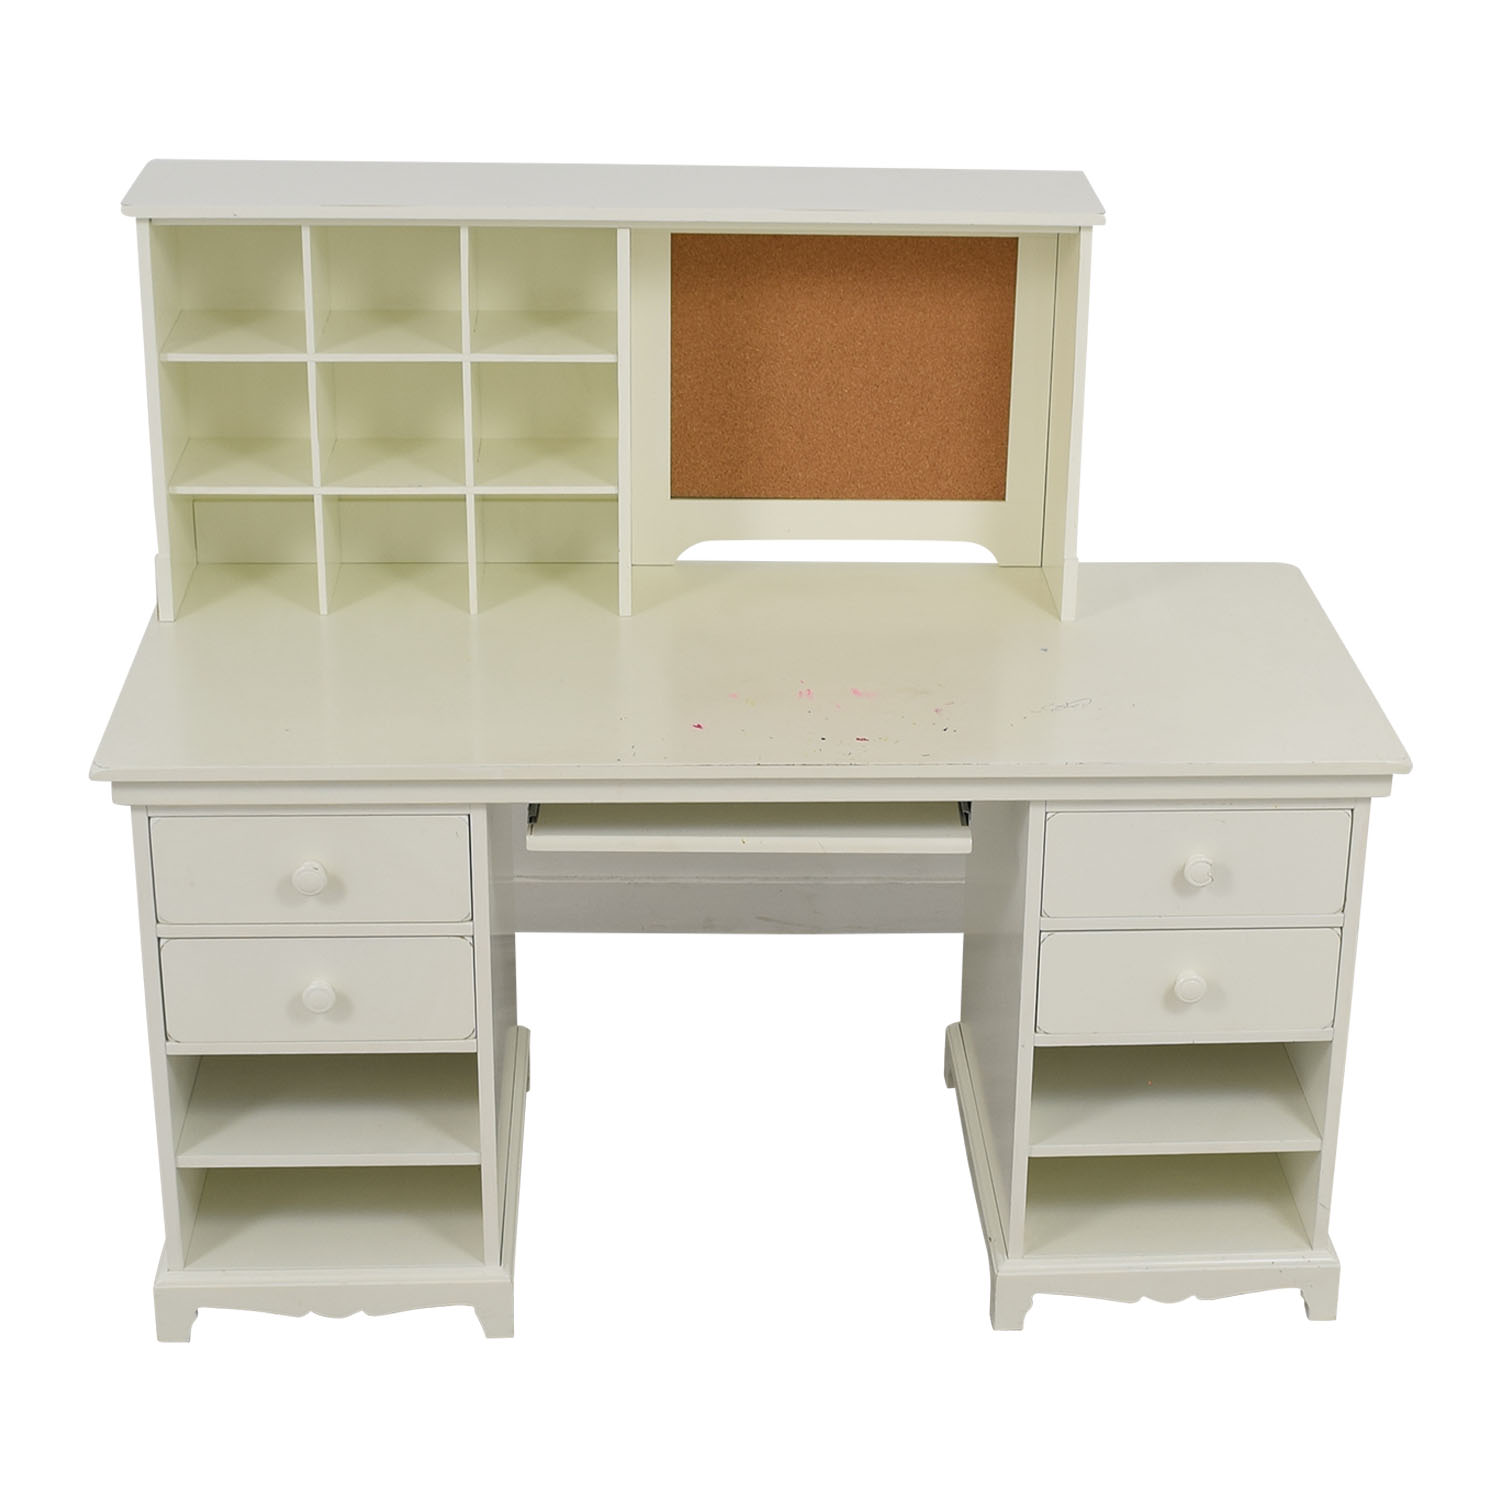 Does Pottery Barn Have Furniture In Stock: Shop Cubby: Used Furniture On Sale